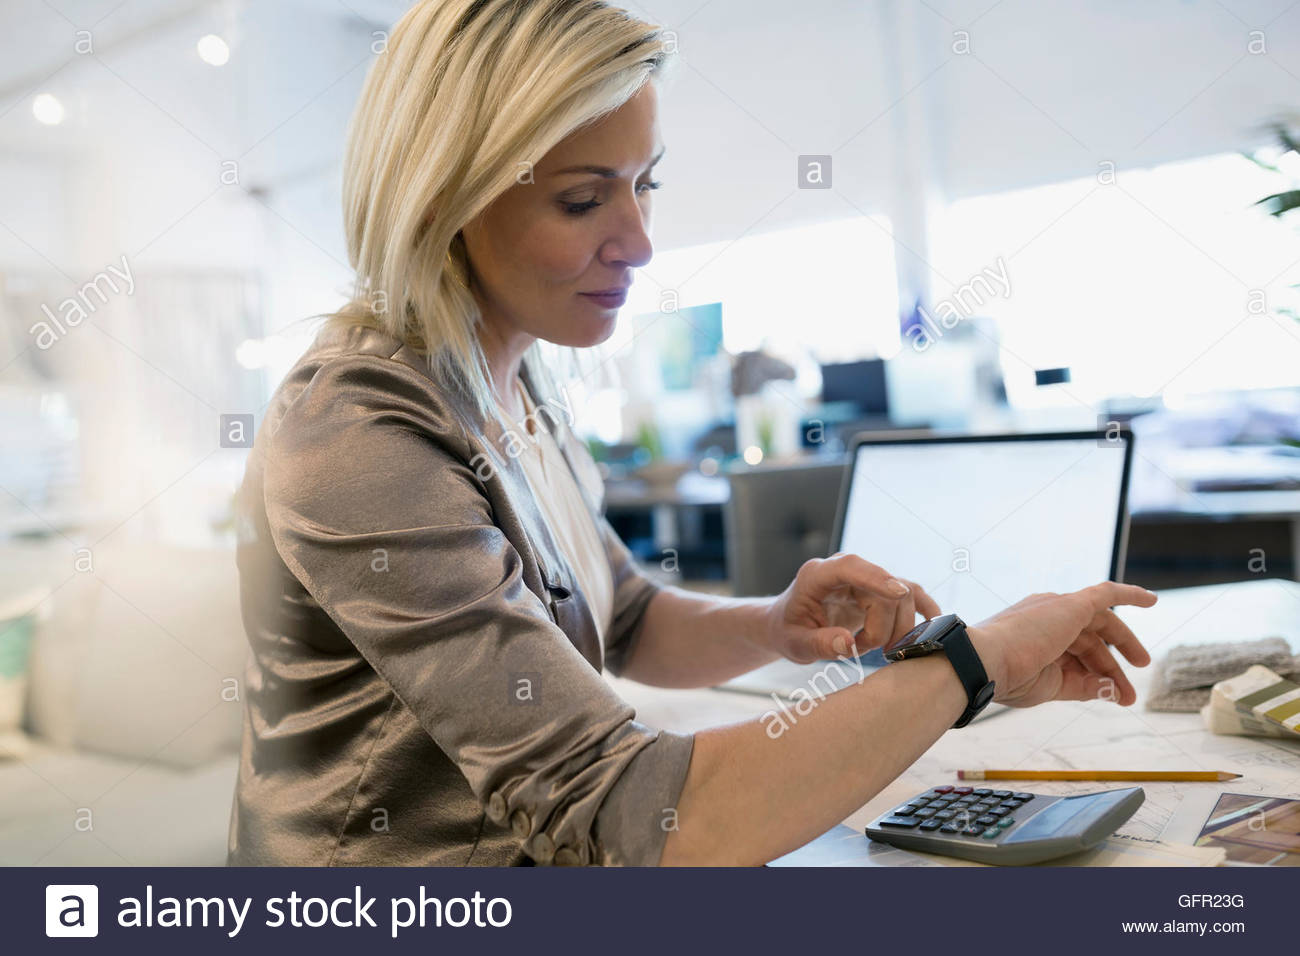 Interior designer checking smart watch - Stock Image